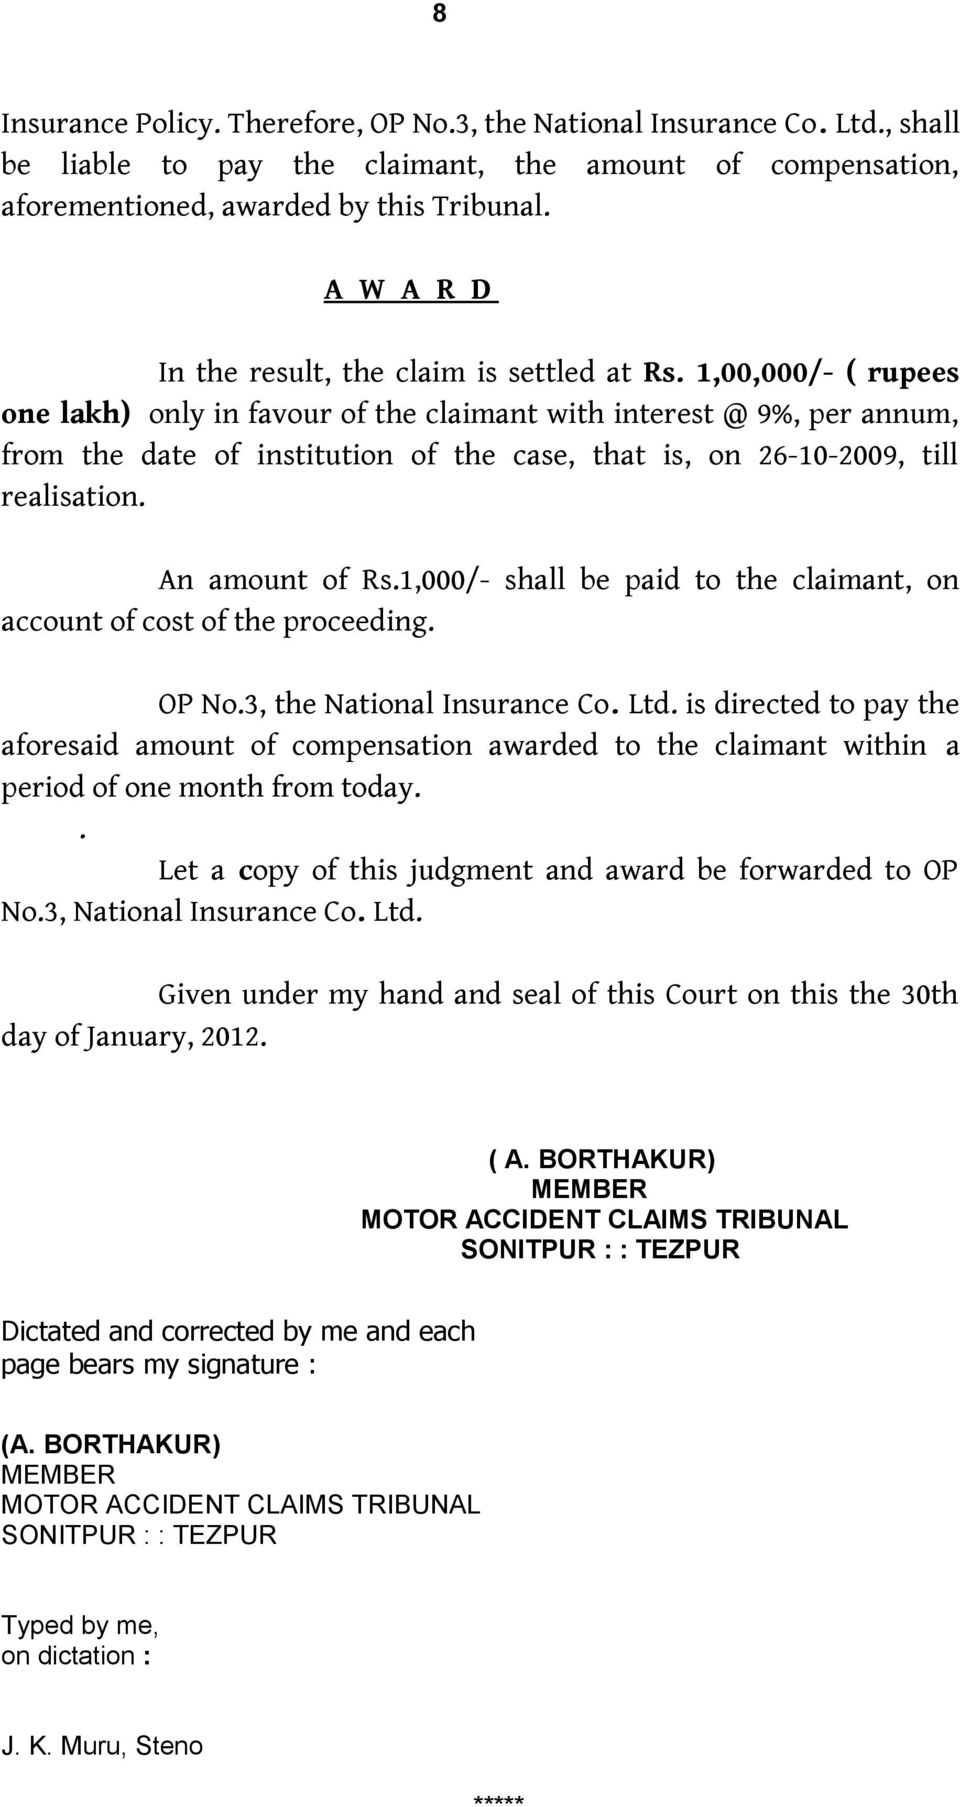 1,00,000/- ( rupees one lakh) only in favour of the claimant with interest @ 9%, per annum, from the date of institution of the case, that is, on 26-10-2009, till realisation. An amount of Rs.